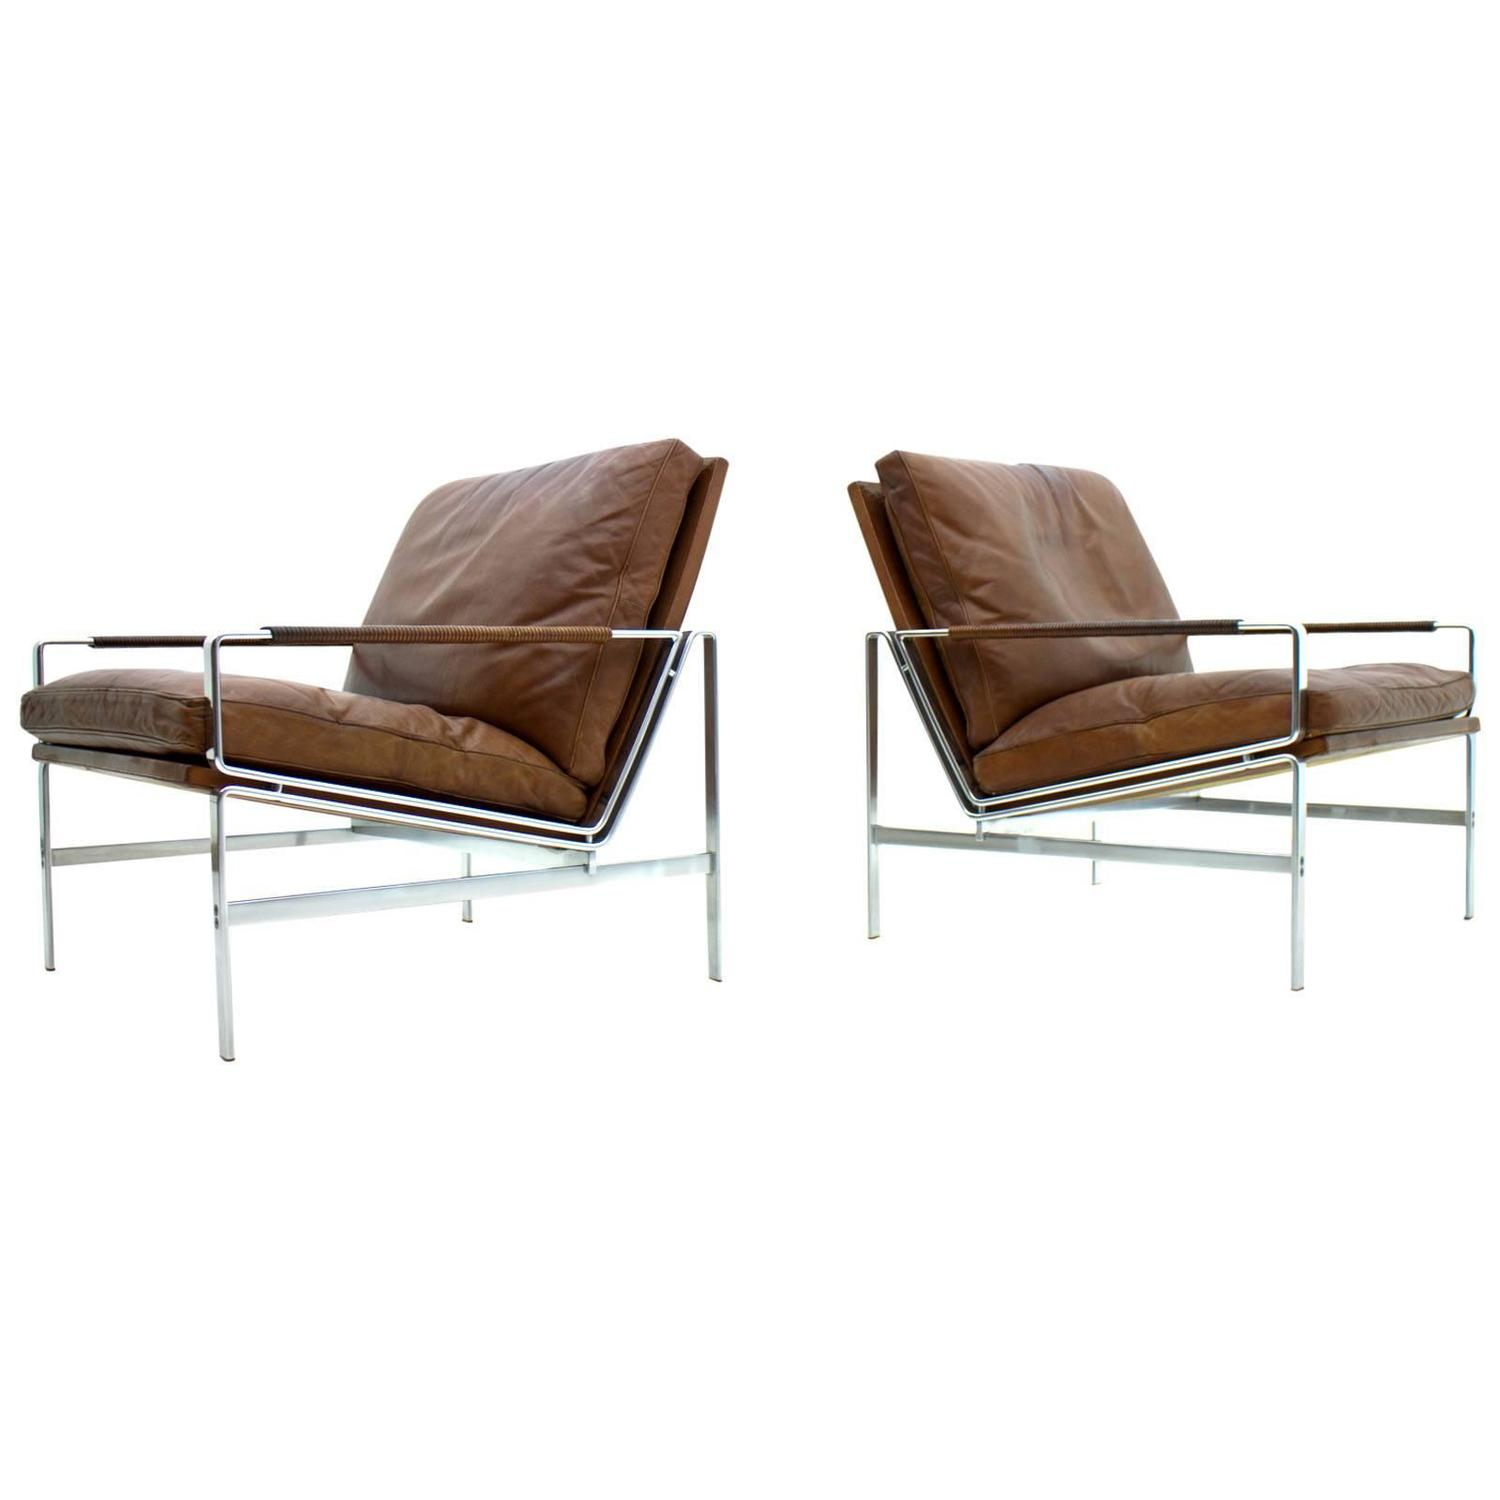 50a6377f78f9 Pair of Leather and Steel Lounge Chairs by Fabricius and Kastholm FK 6720  at 1stdibs